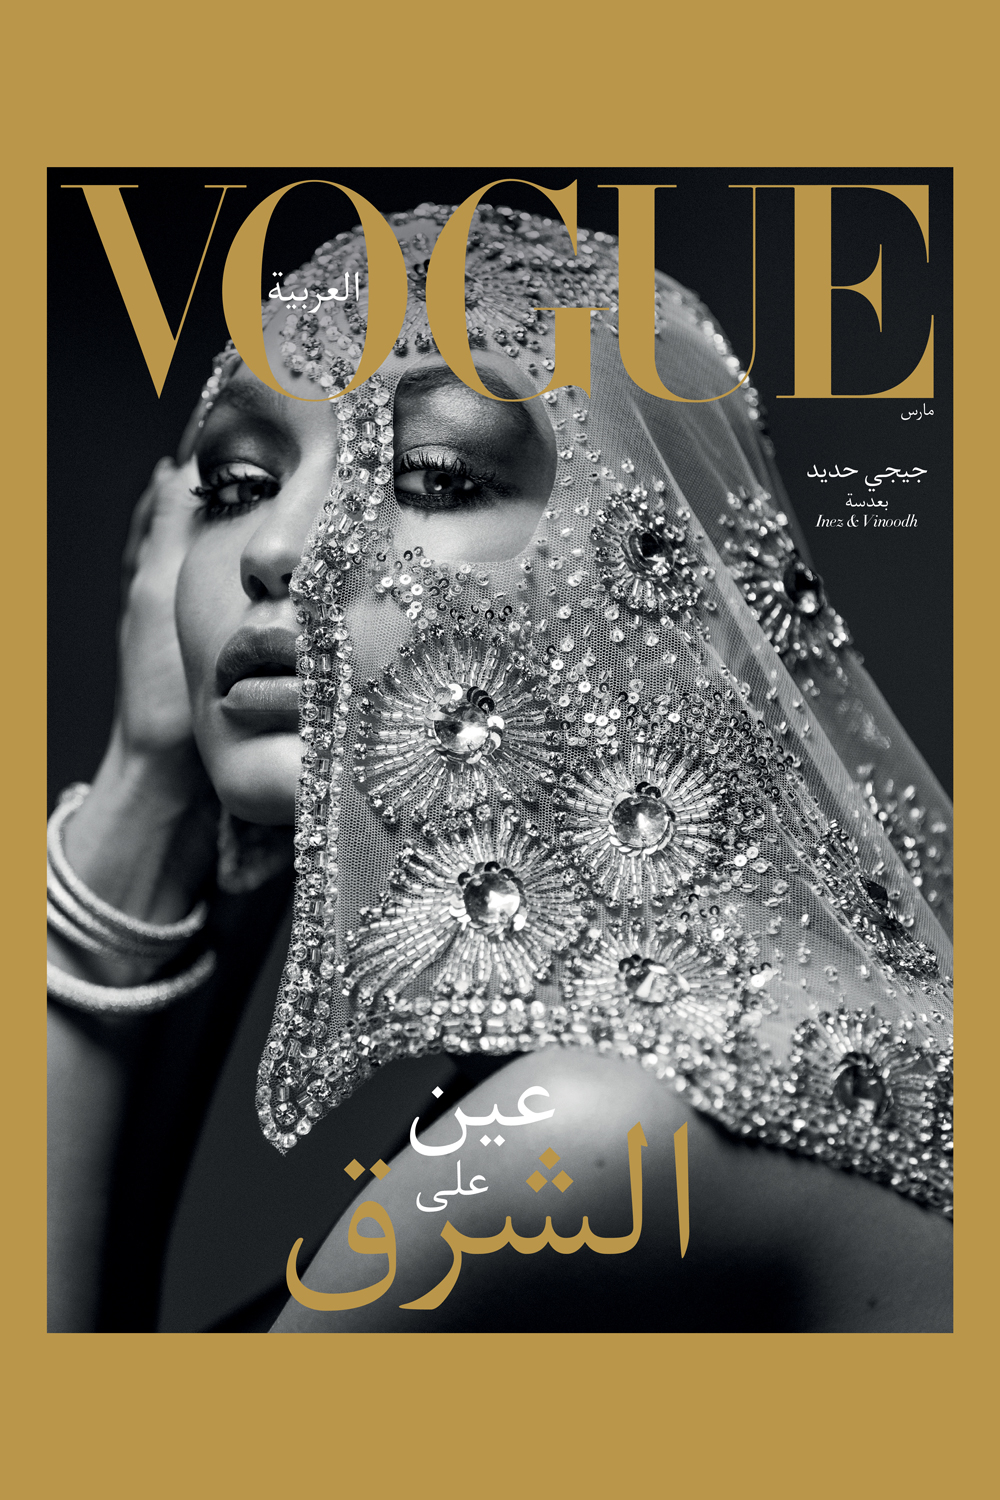 Gigi Hadid Covers Vogue Arabia Magazine